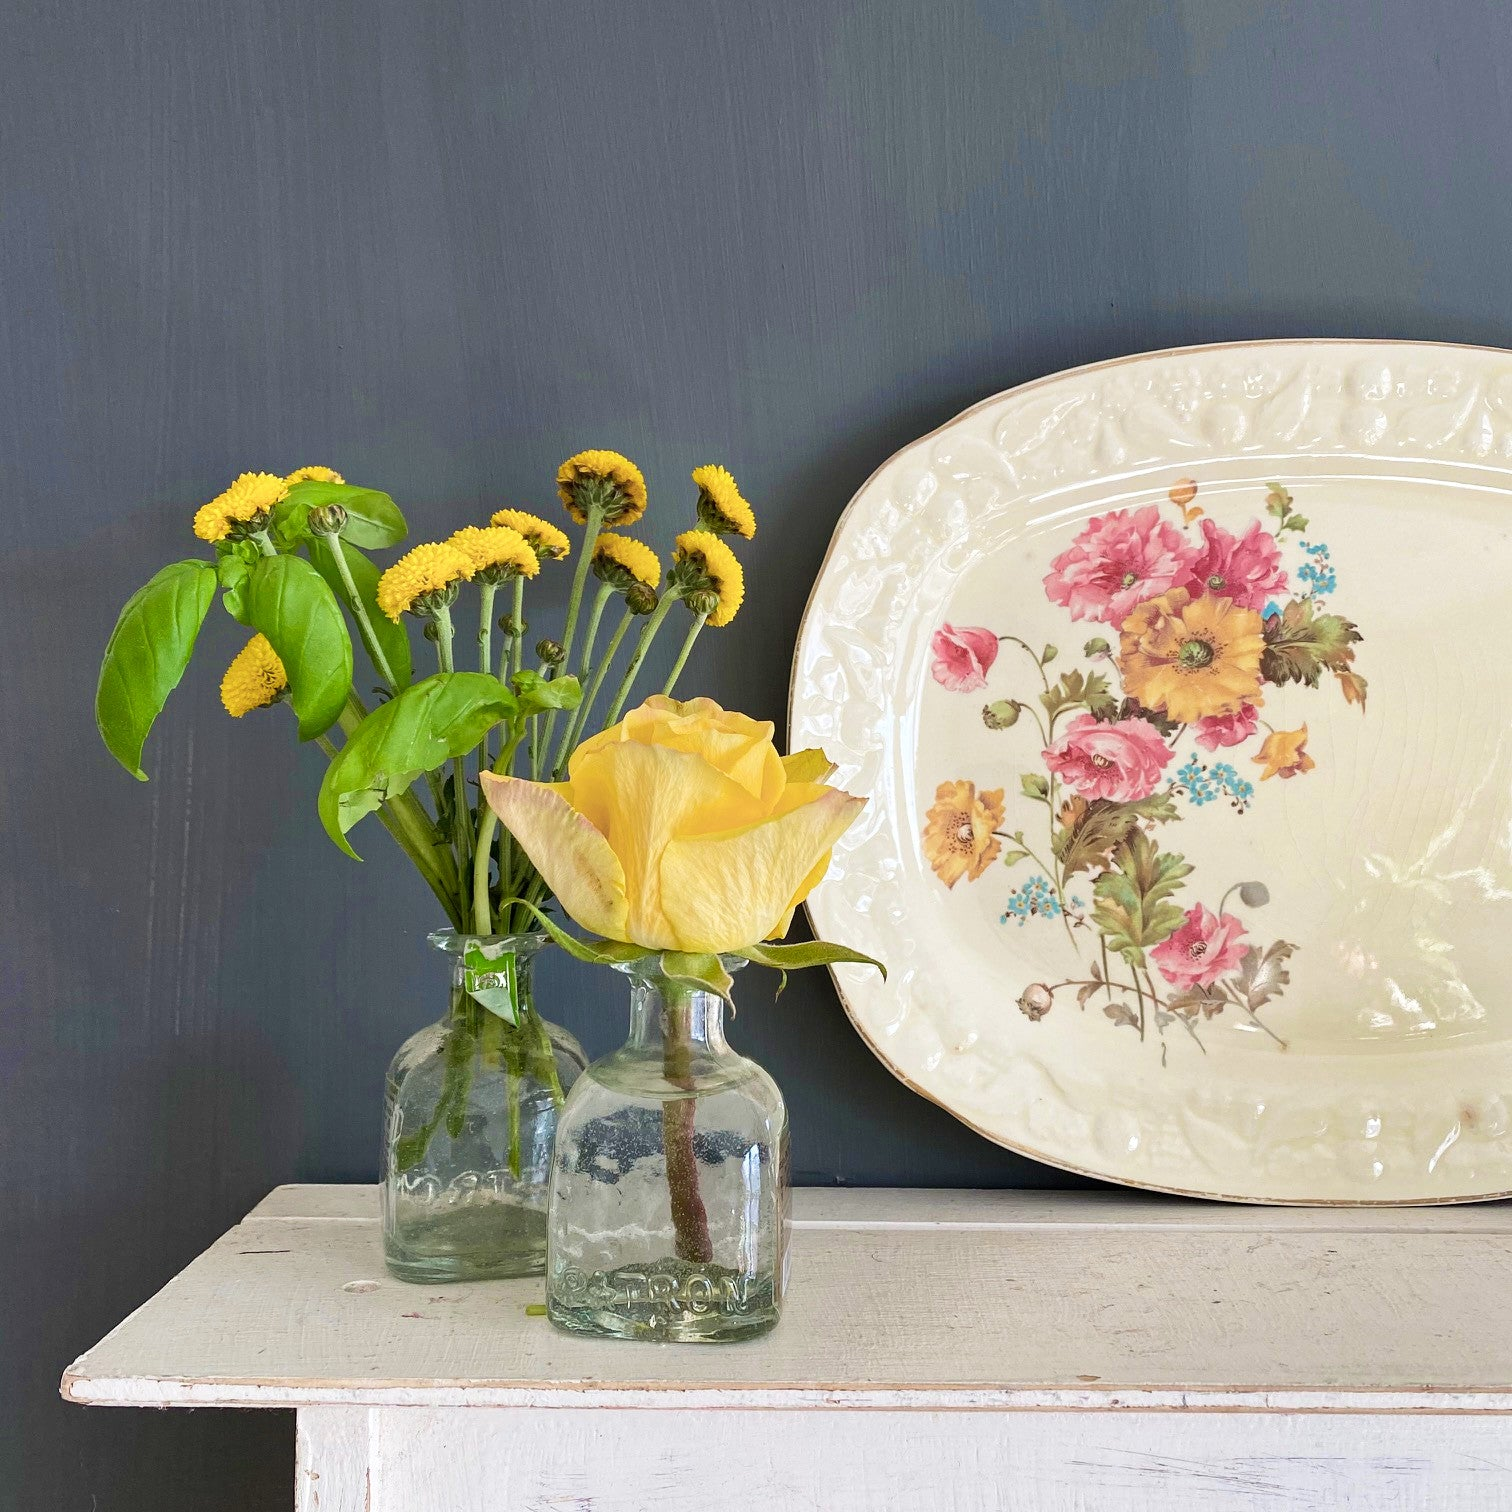 Vintage 1930s Crooksville China Platter - Pink & Yellow Florals with Embossed Fruit Rim